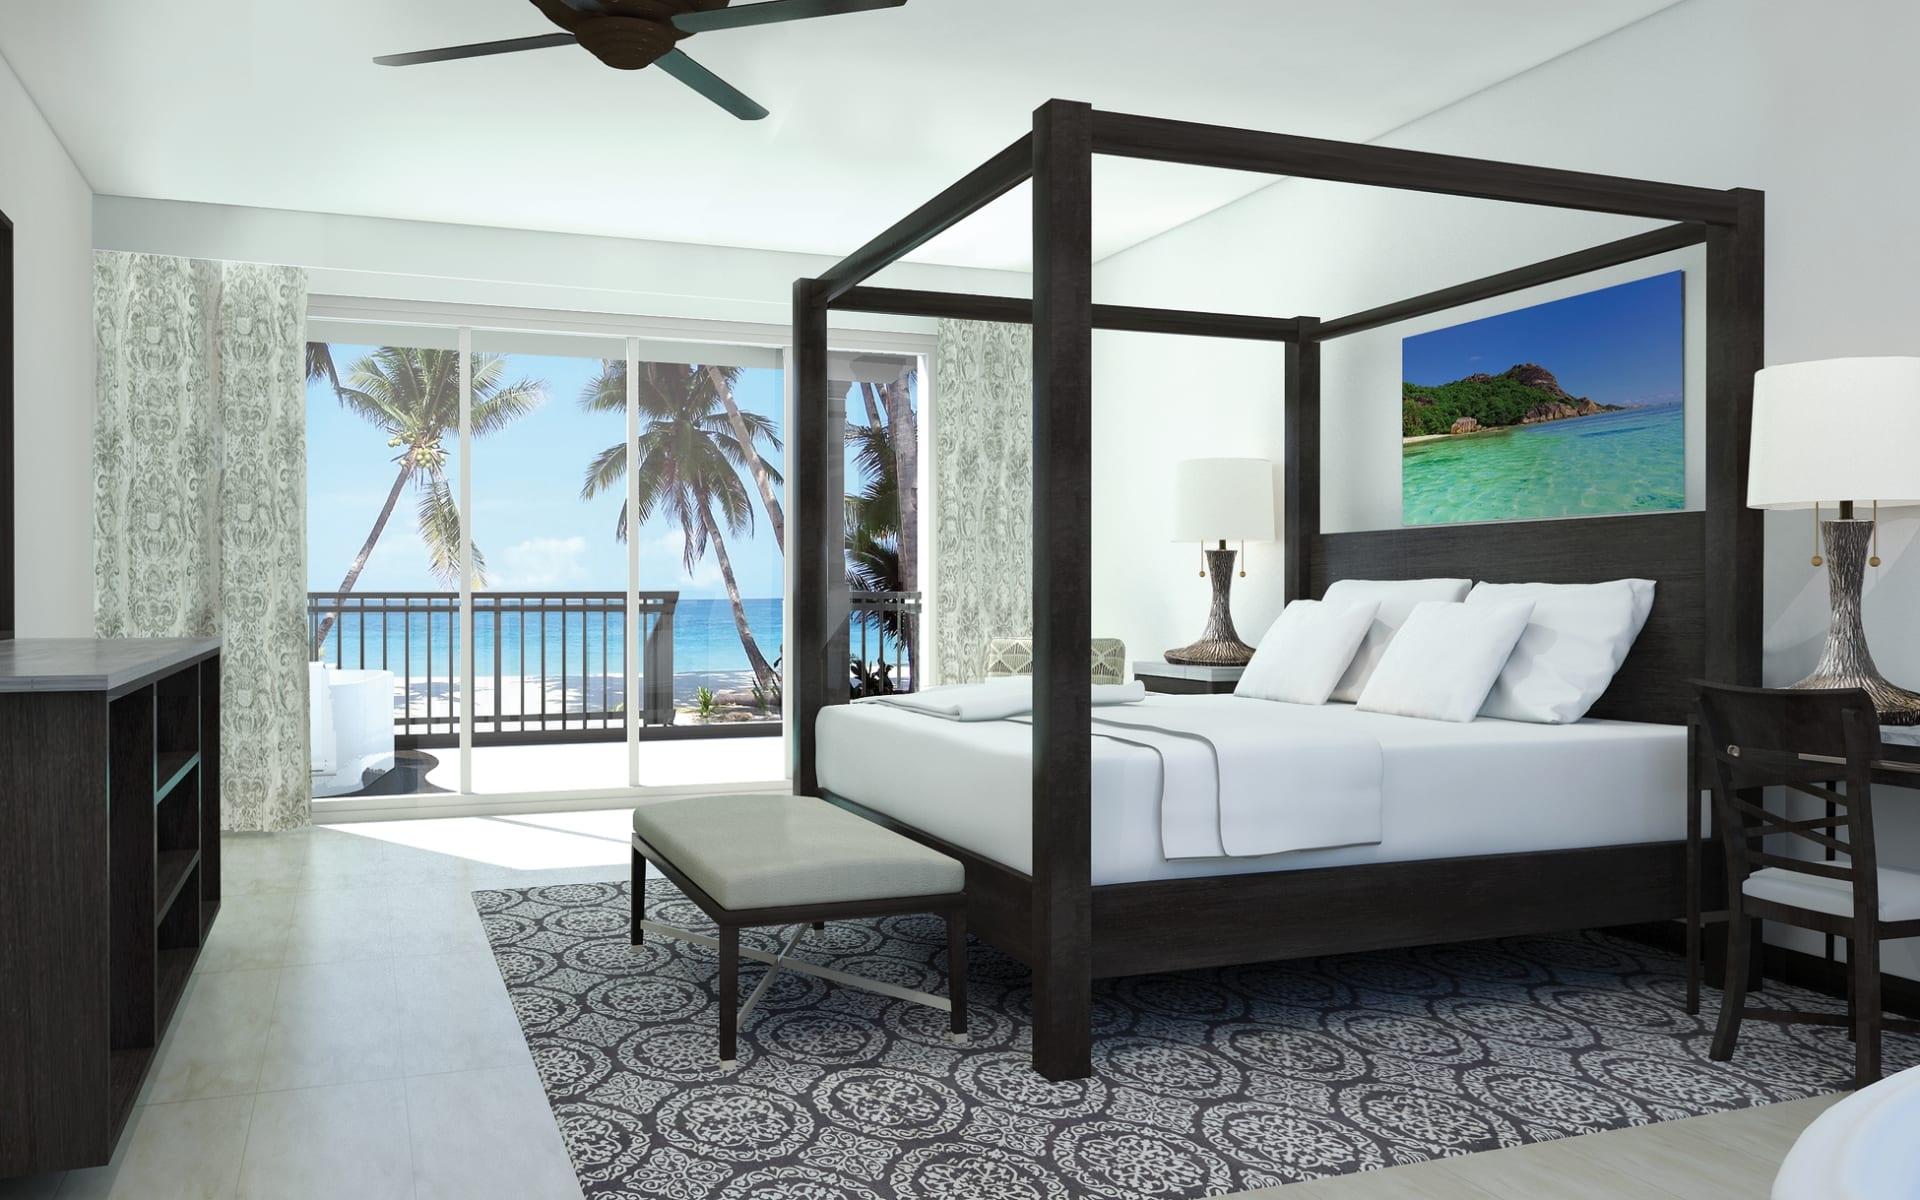 Sandals Royal Caribbean Resort and Private Island in Montego Bay:  14_258_02_Sandals Royal Caribbean GBT Bedroom Artist Impression 1